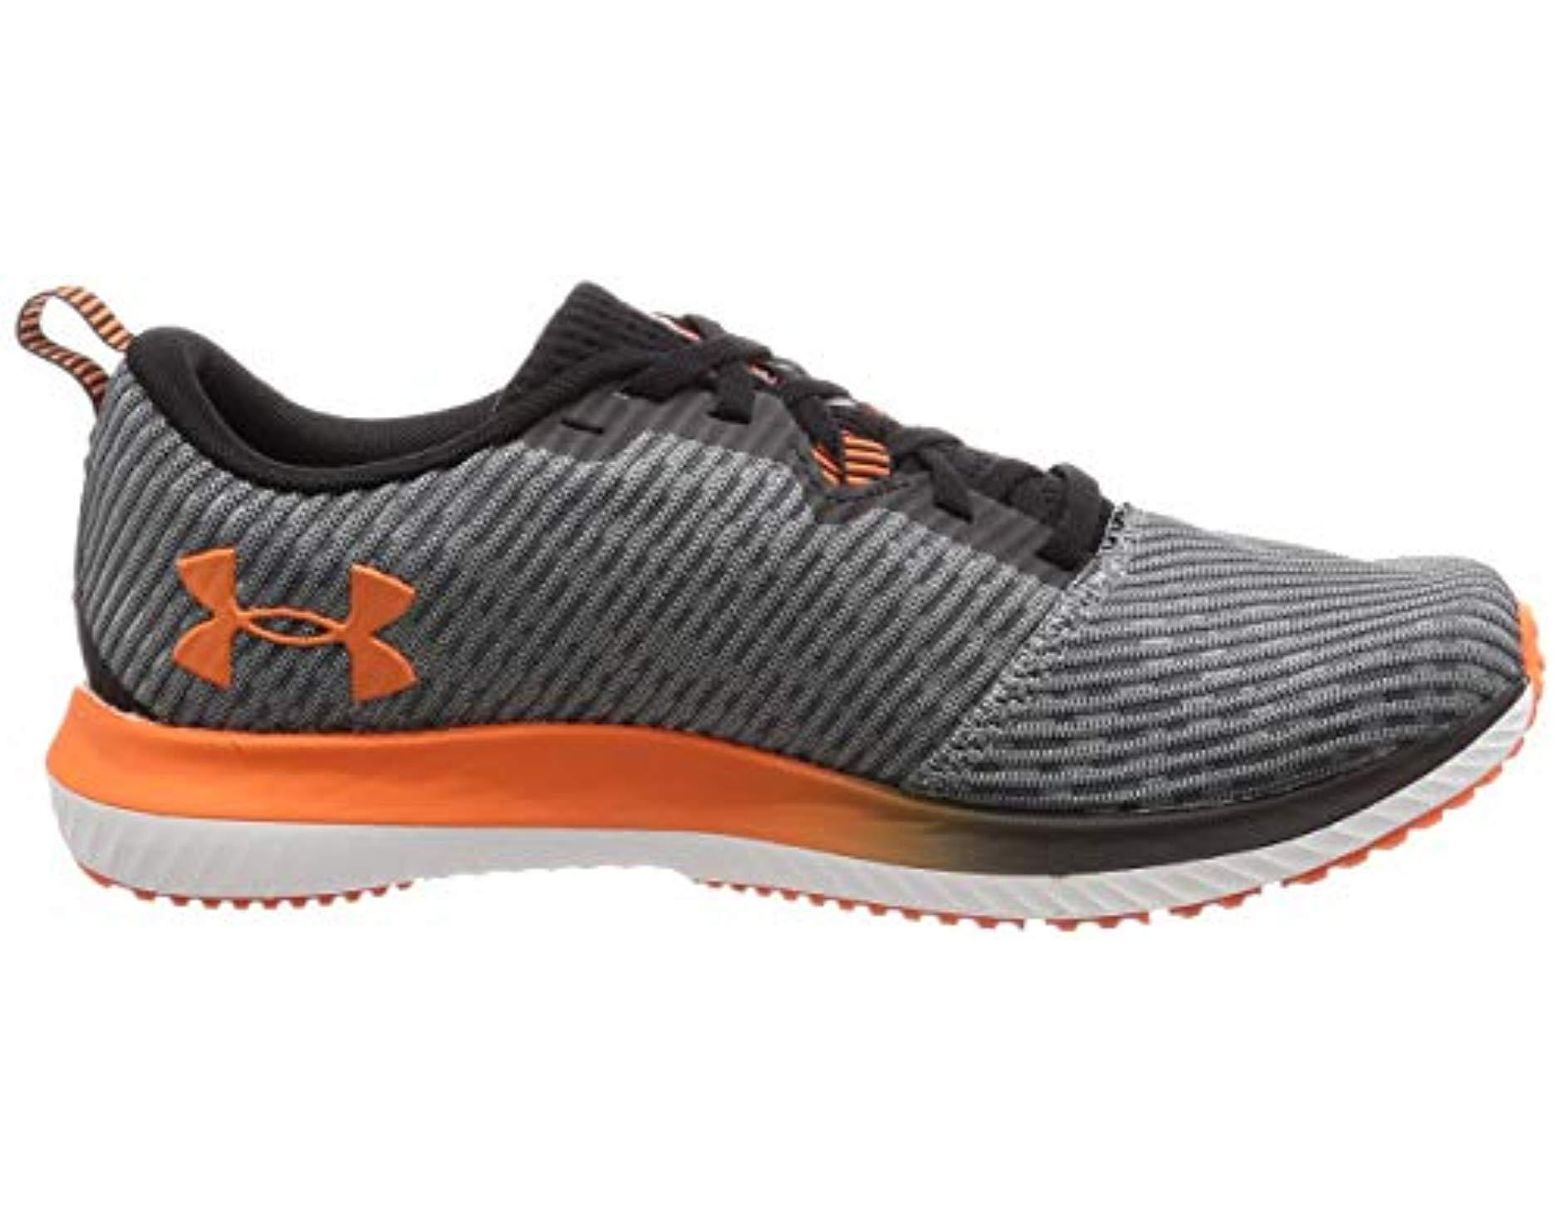 3f7b81290 Under Armour Micro G Blur 2 Man Shoes in Black for Men - Lyst